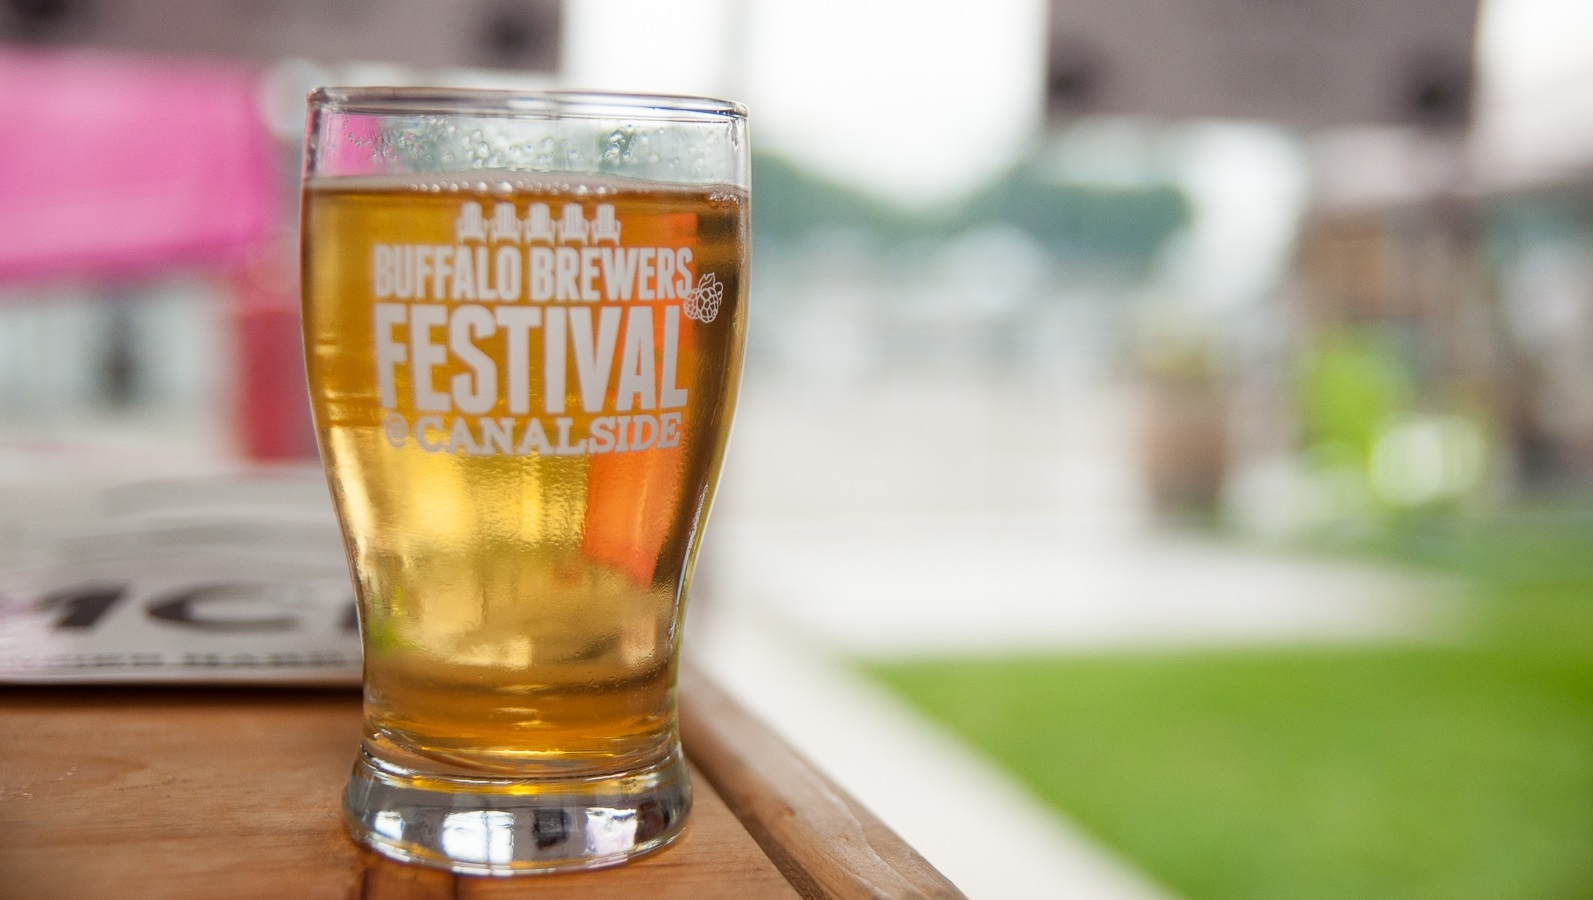 The Buffalo Brewers Festival runs on June 18 at Wilkeson Pointe. (Matt Weinberg/Special to The News)